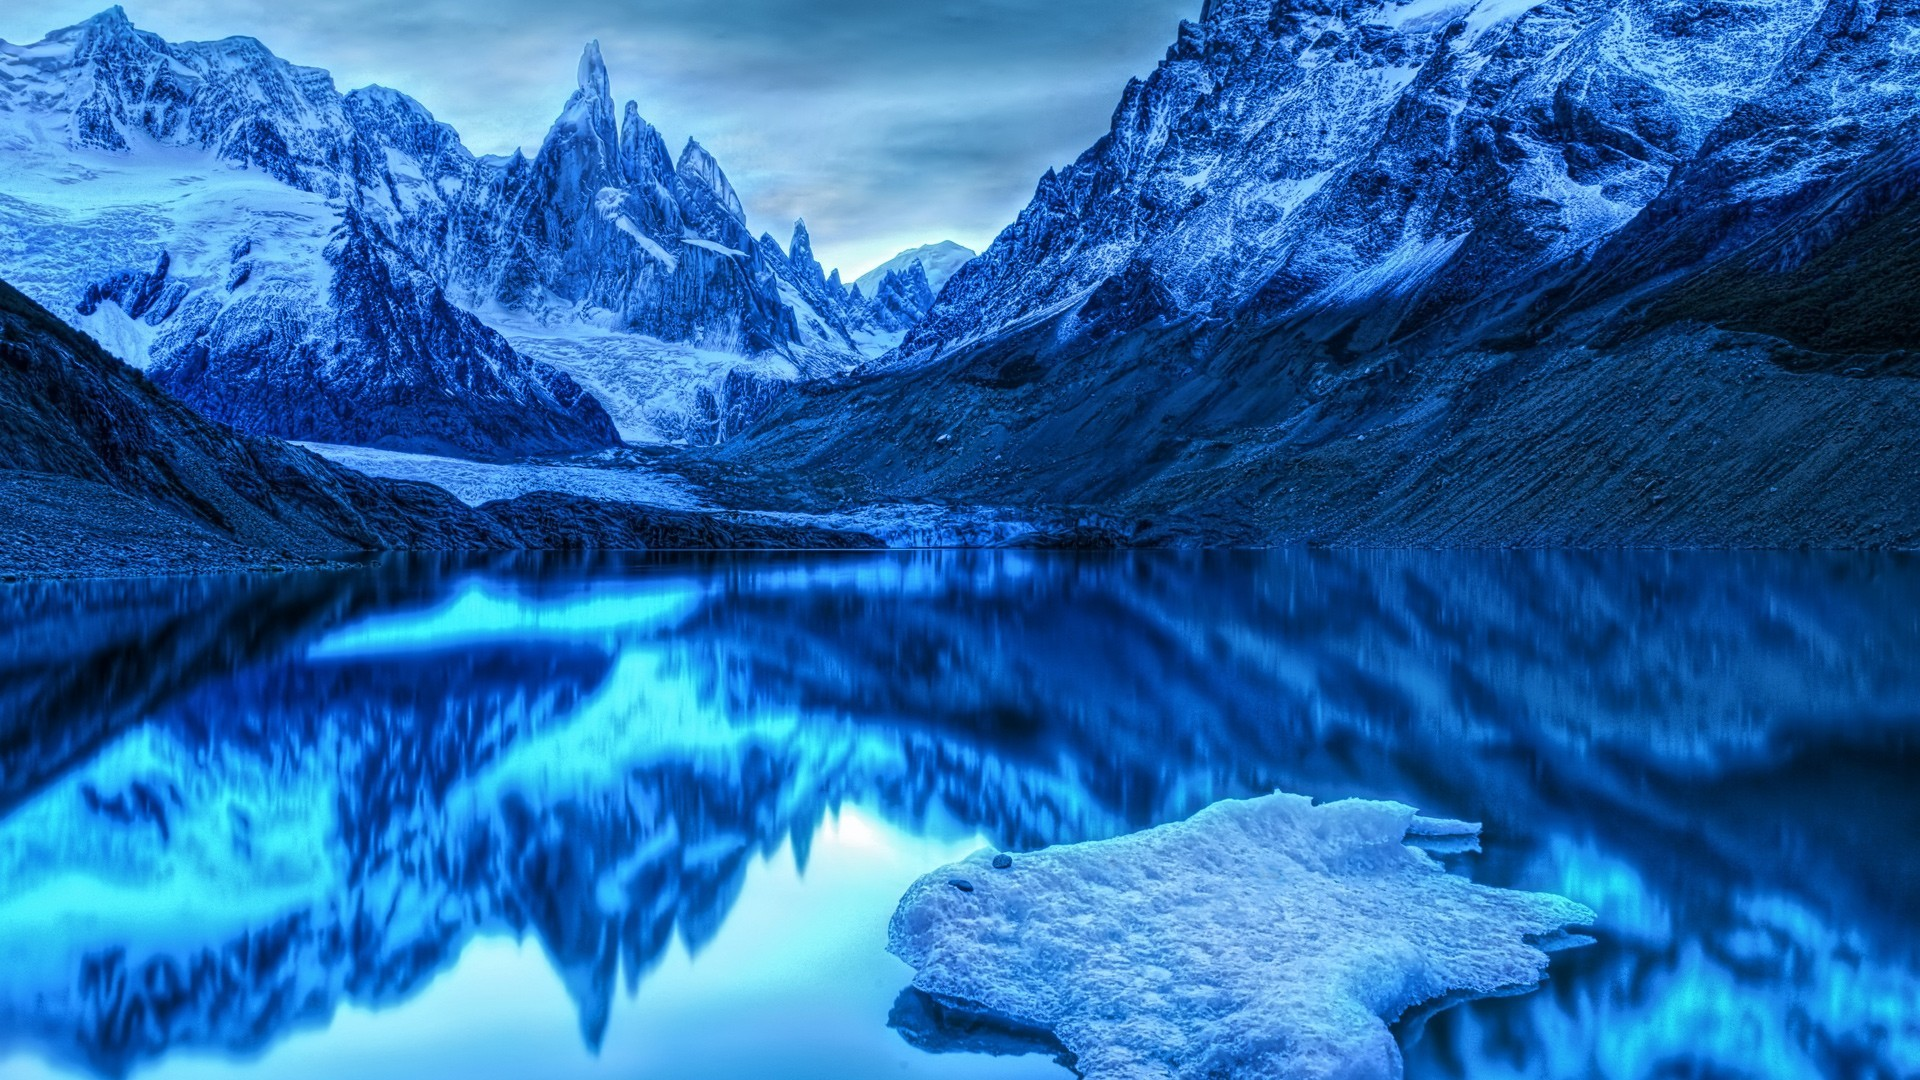 Lake In The Snowy Mountains Wallpaper